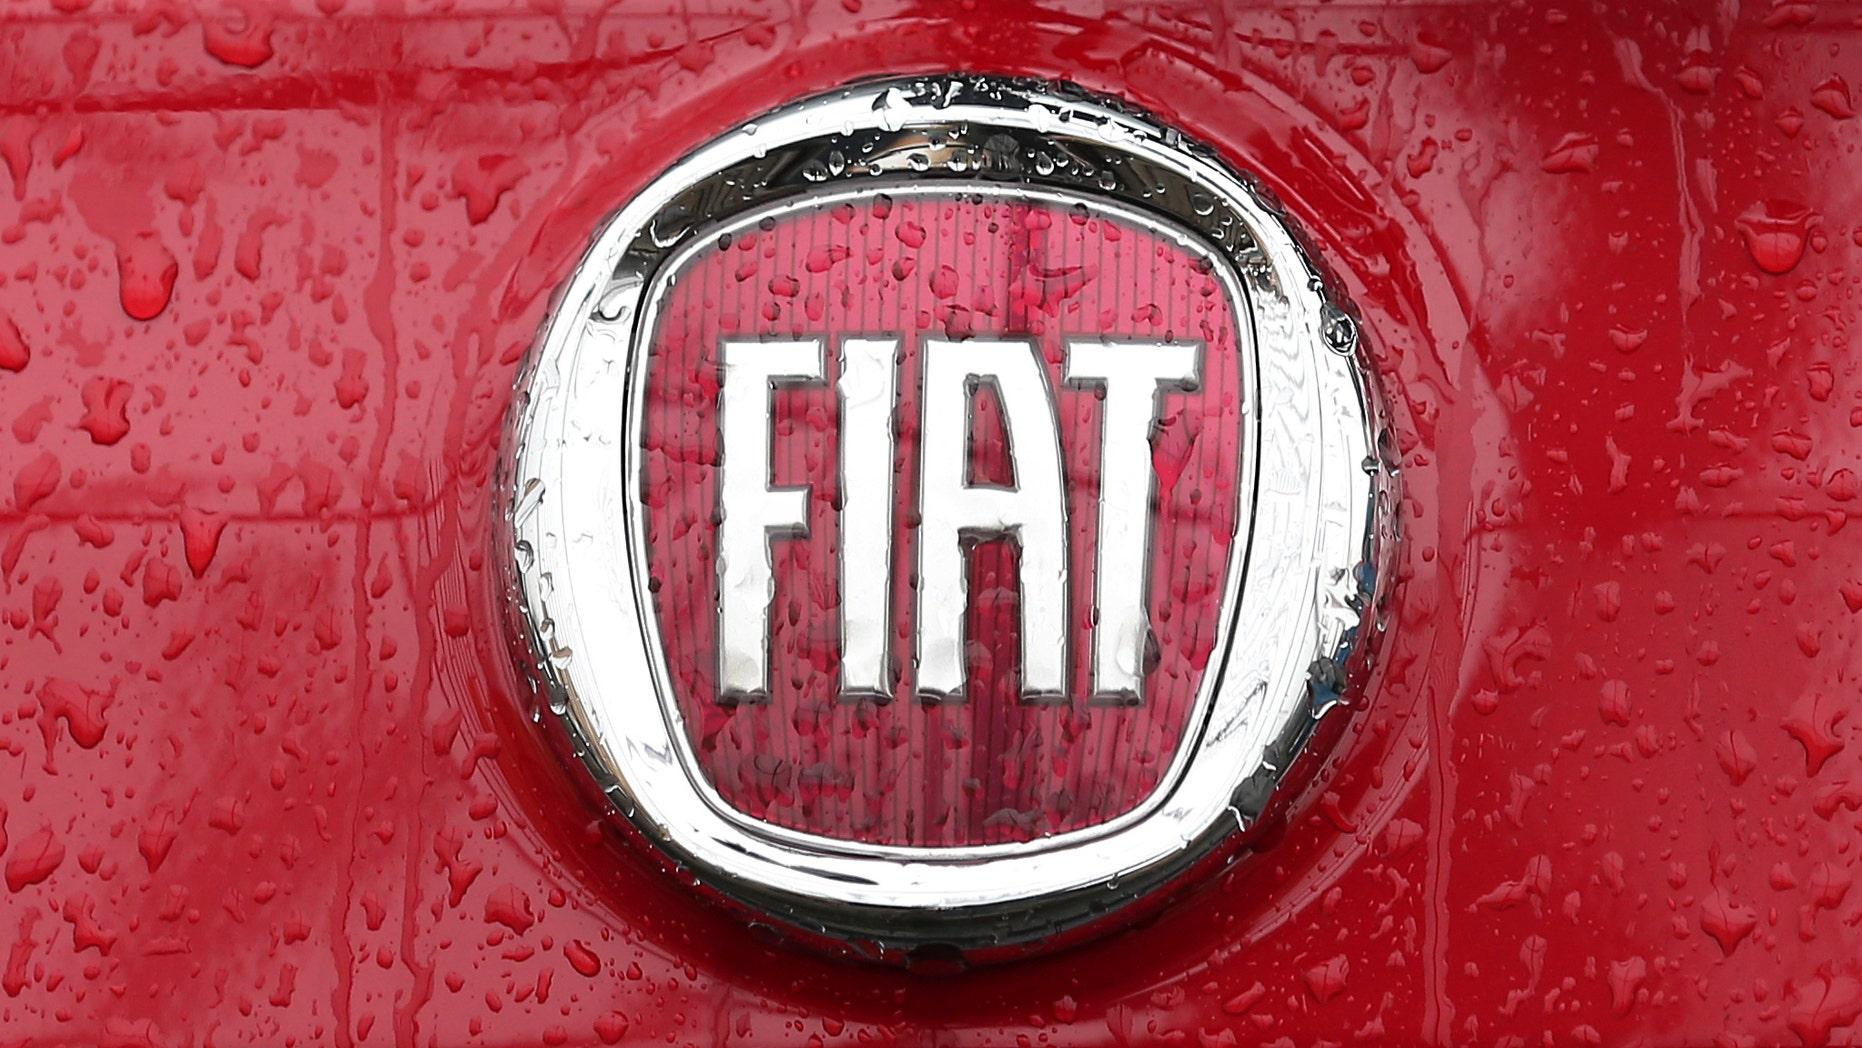 Rain falls on a Fiat logo pictured on a car  in Milan, Italy, Thursday, Jan. 2, 2014.  Italian automaker Fiat SpA announced that it reached an agreement to acquire the remaining shares of Chrysler for $3.65 billion in payments to a union-controlled trust fund. Fiat already owns 58.5 percent of Chrysler's shares, with the remaining 41.5 percent held by a United Auto Workers union trust fund that pays health care bills for retirees.( AP Photo/Antonio Calanni)